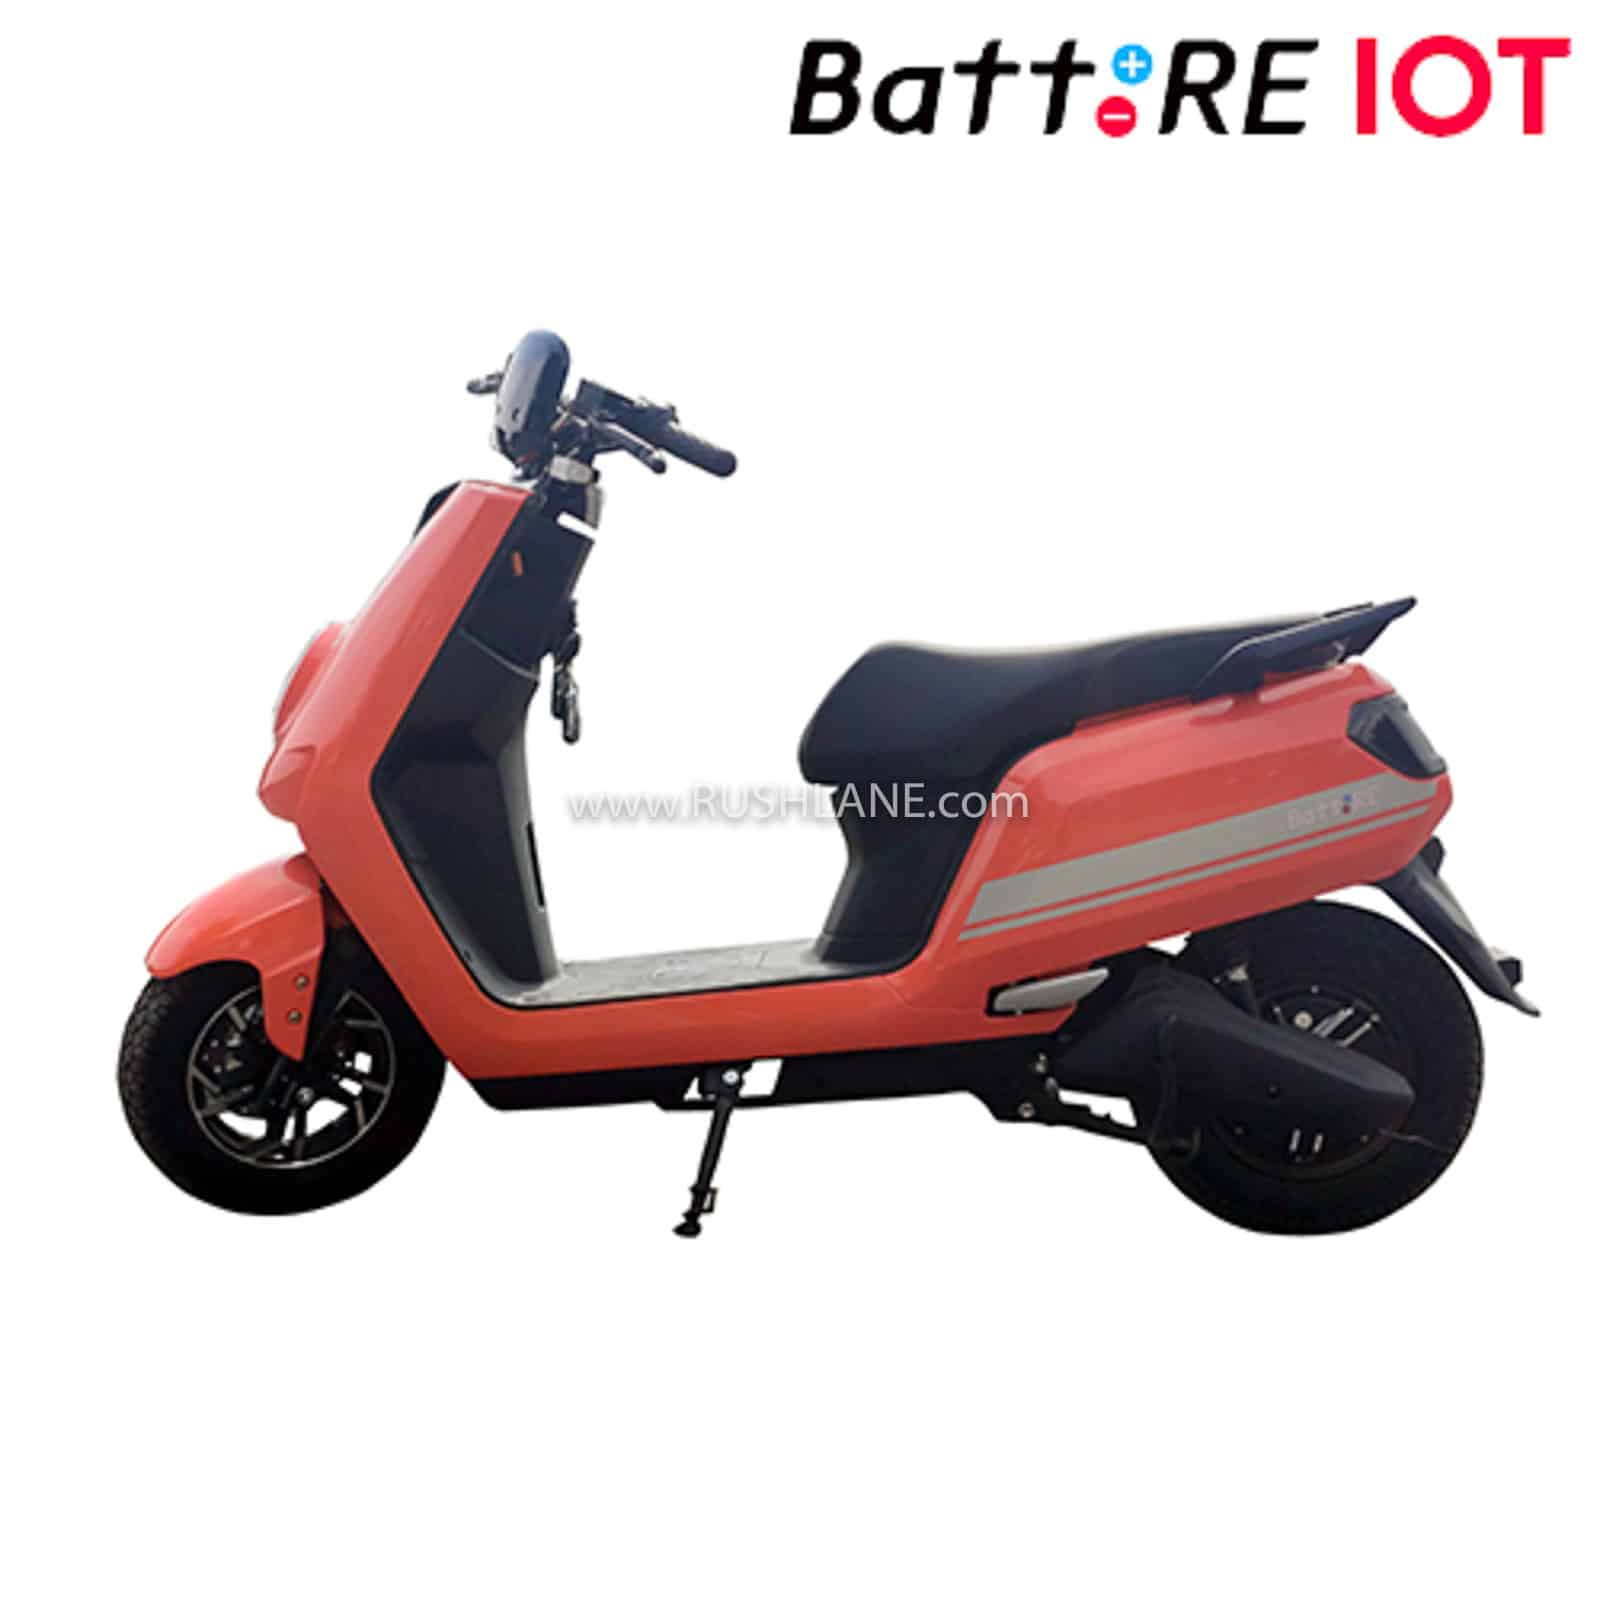 BattRE electric scooter with Internet - Launch price Rs 80k